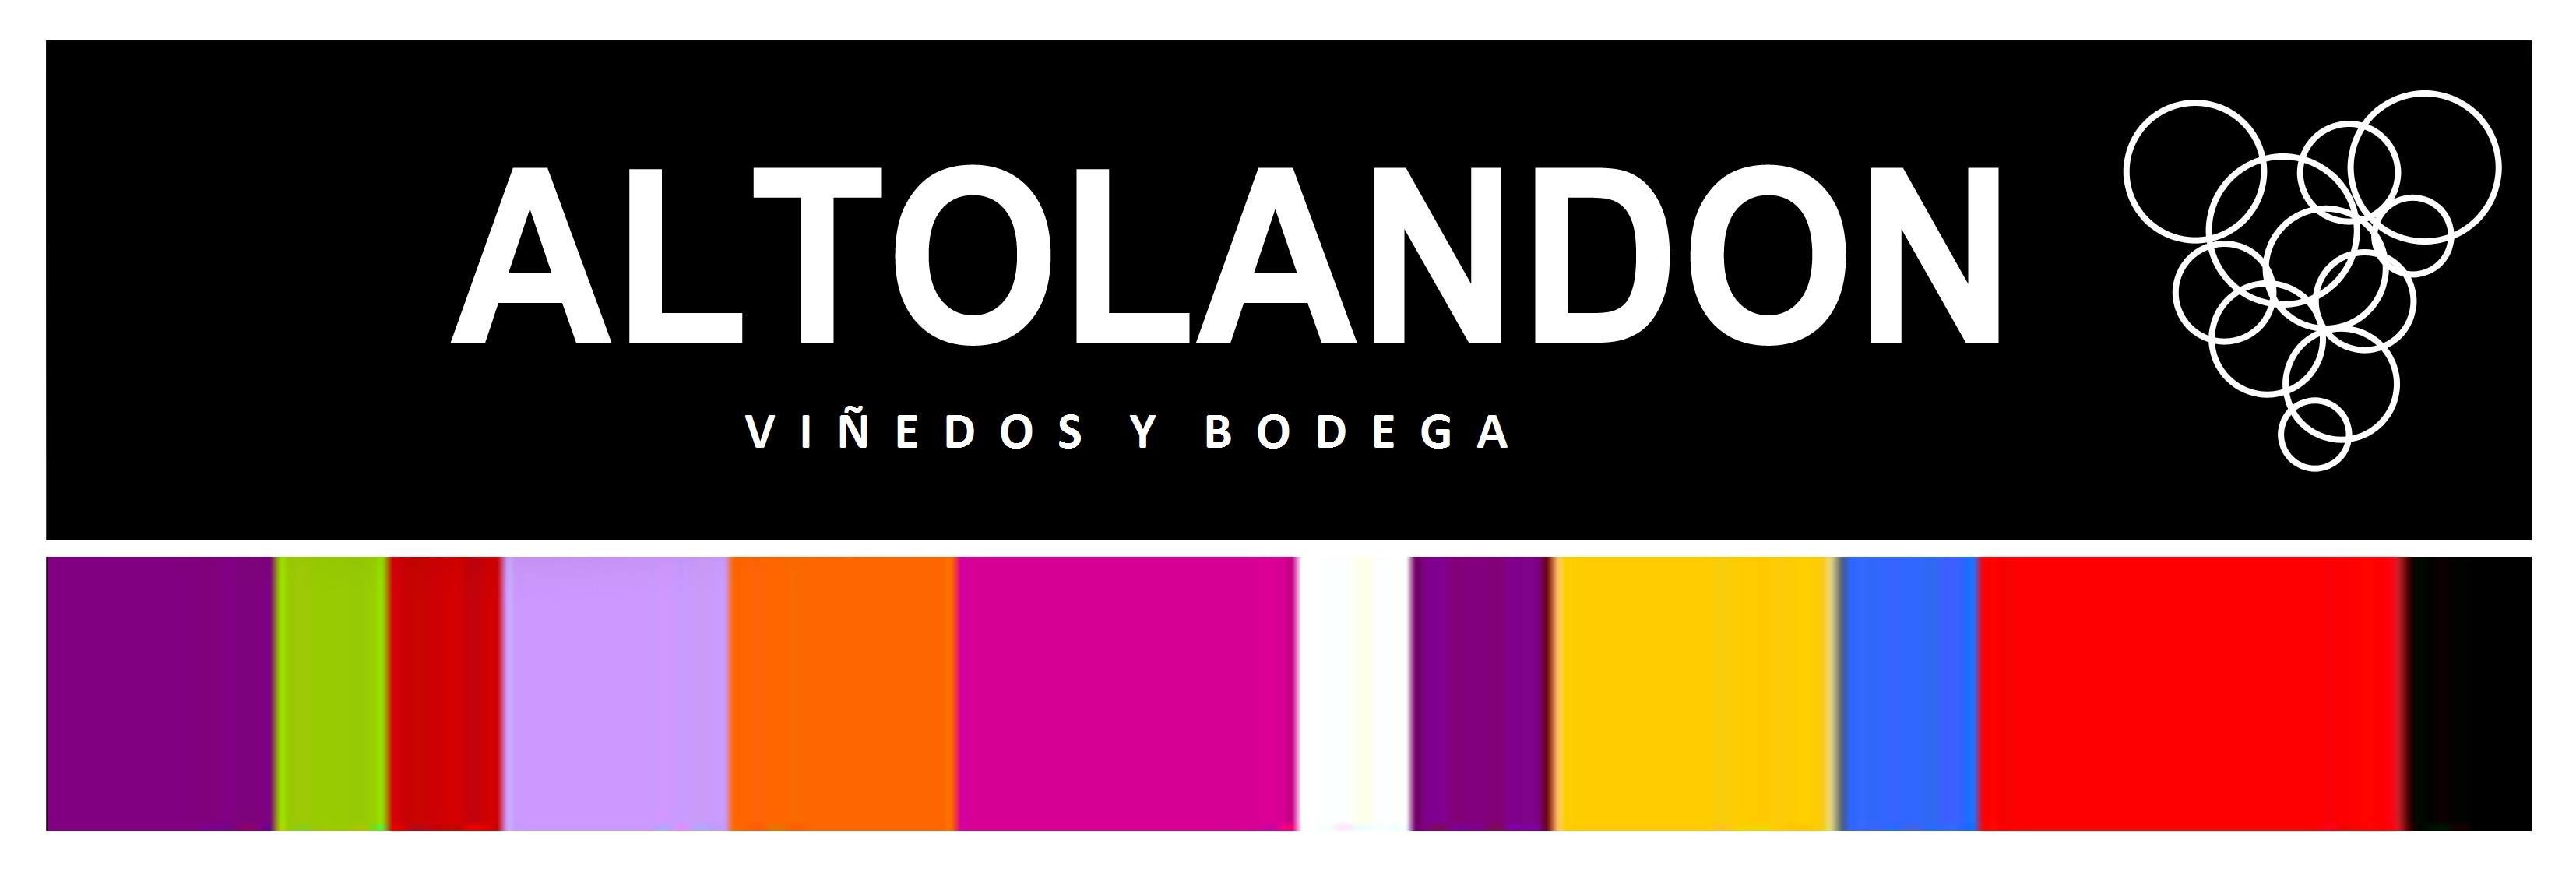 Altolandon logo